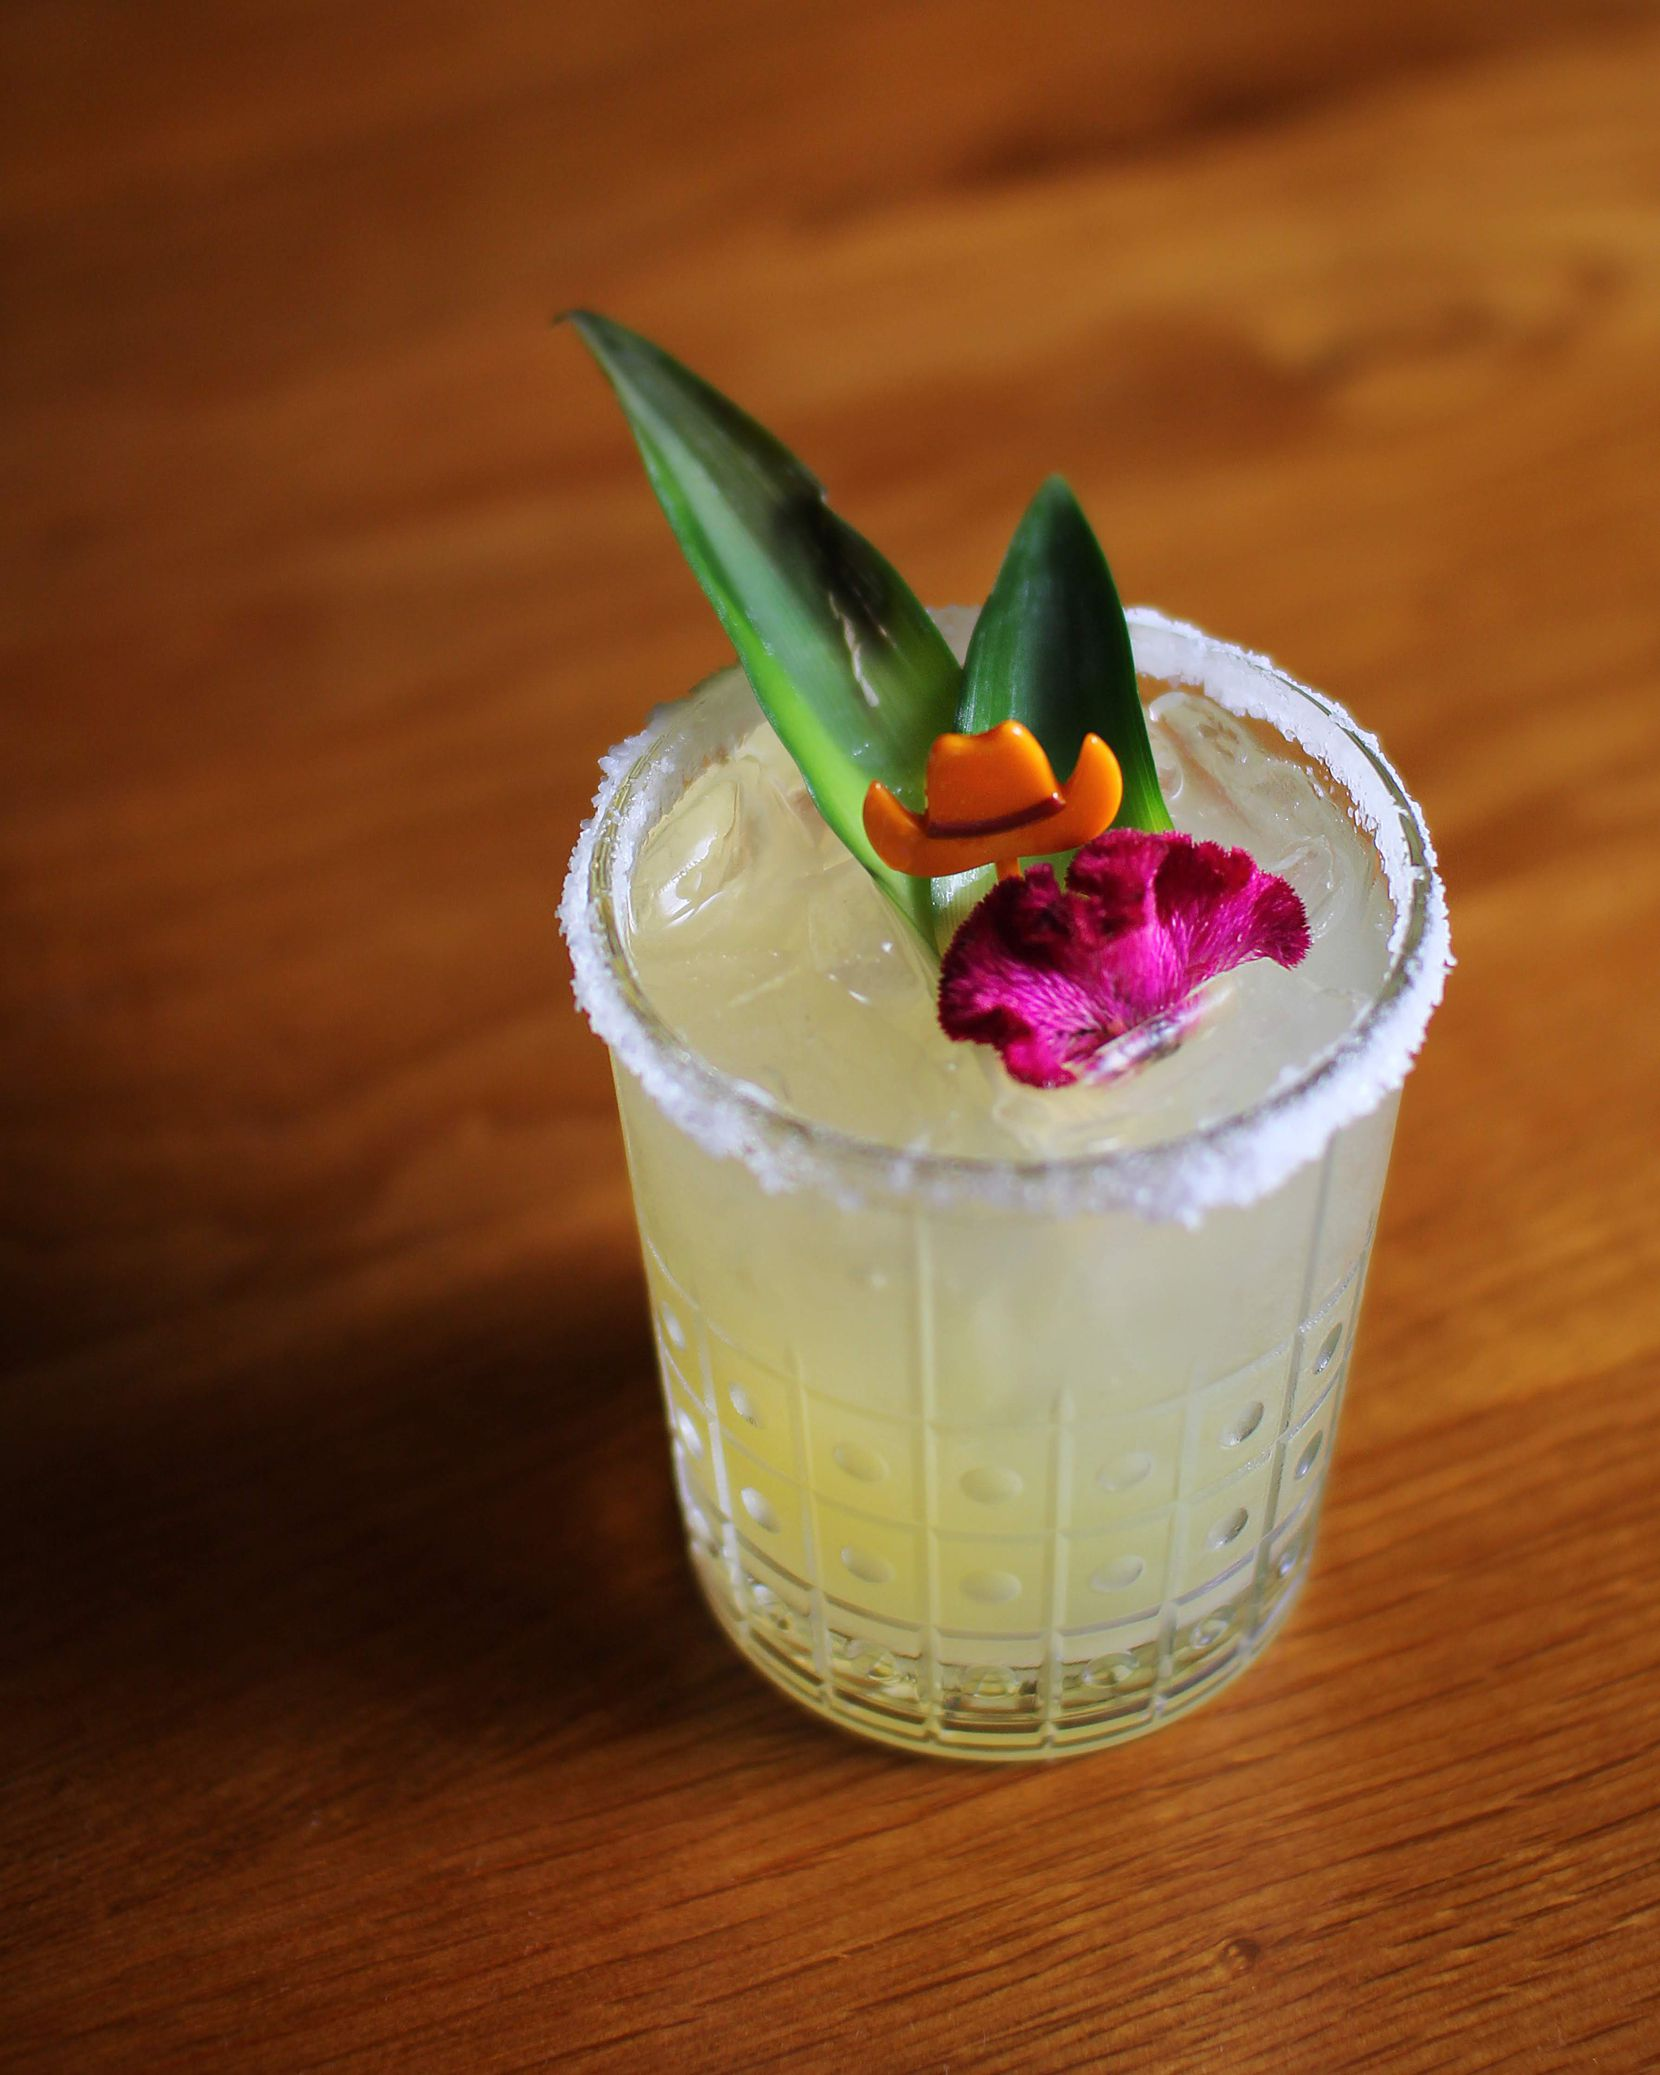 Dean s Signature Margarita, $22, is available at Fearing's Restaurant and Rattlesnake Bar at the Ritz Carlton, Dallas.